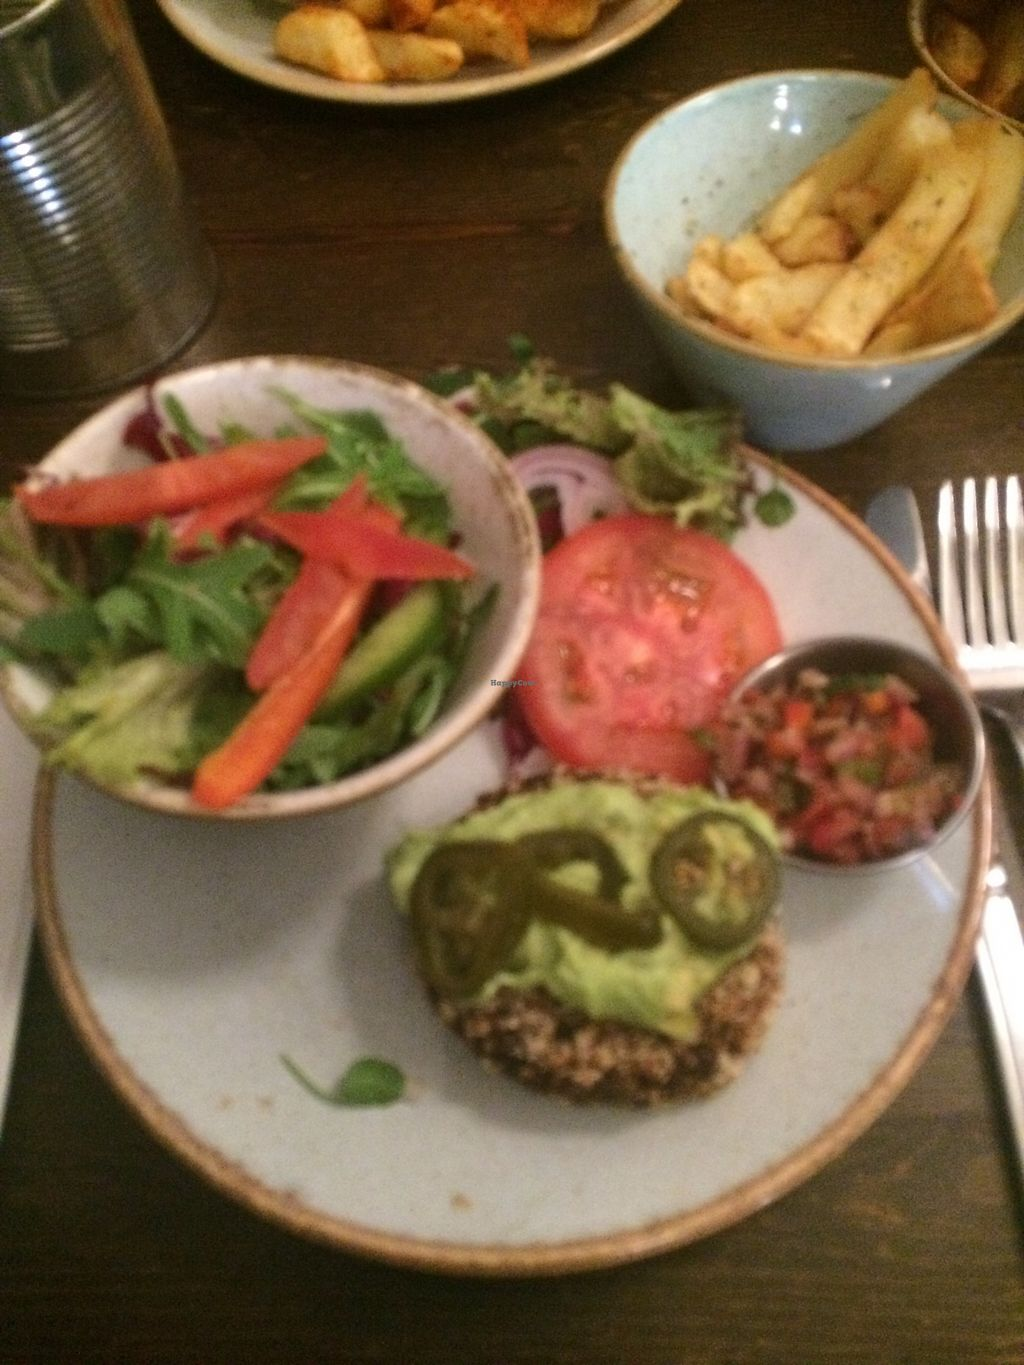 "Photo of Handmade Burger Company  by <a href=""/members/profile/xraysez"">xraysez</a> <br/>Veg mex. No bun. Salad instead.  <br/> August 25, 2017  - <a href='/contact/abuse/image/67867/296962'>Report</a>"